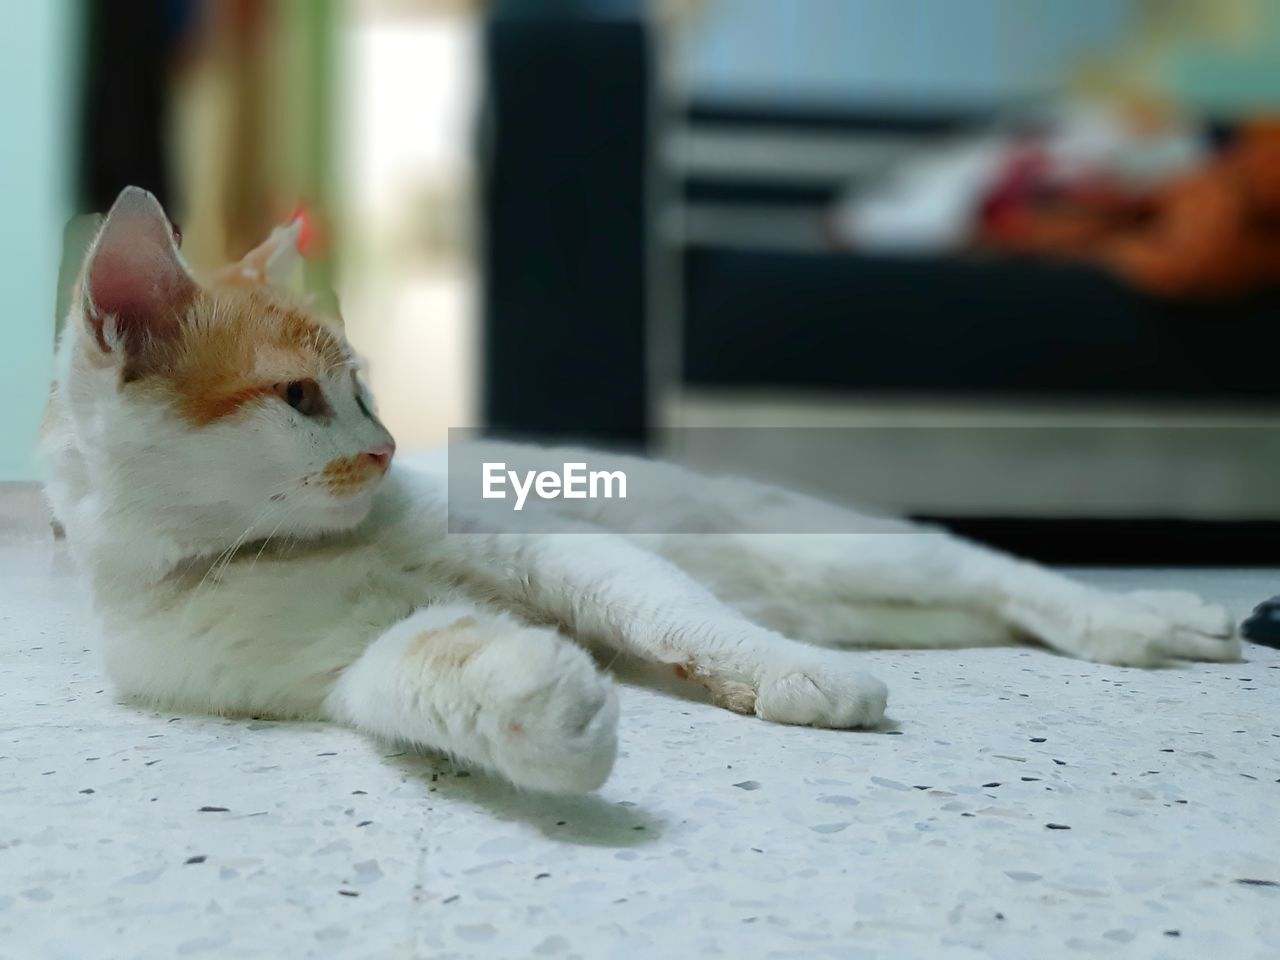 pets, domestic, domestic animals, animal, animal themes, mammal, one animal, domestic cat, cat, feline, vertebrate, white color, no people, relaxation, looking away, looking, focus on foreground, selective focus, indoors, lying down, whisker